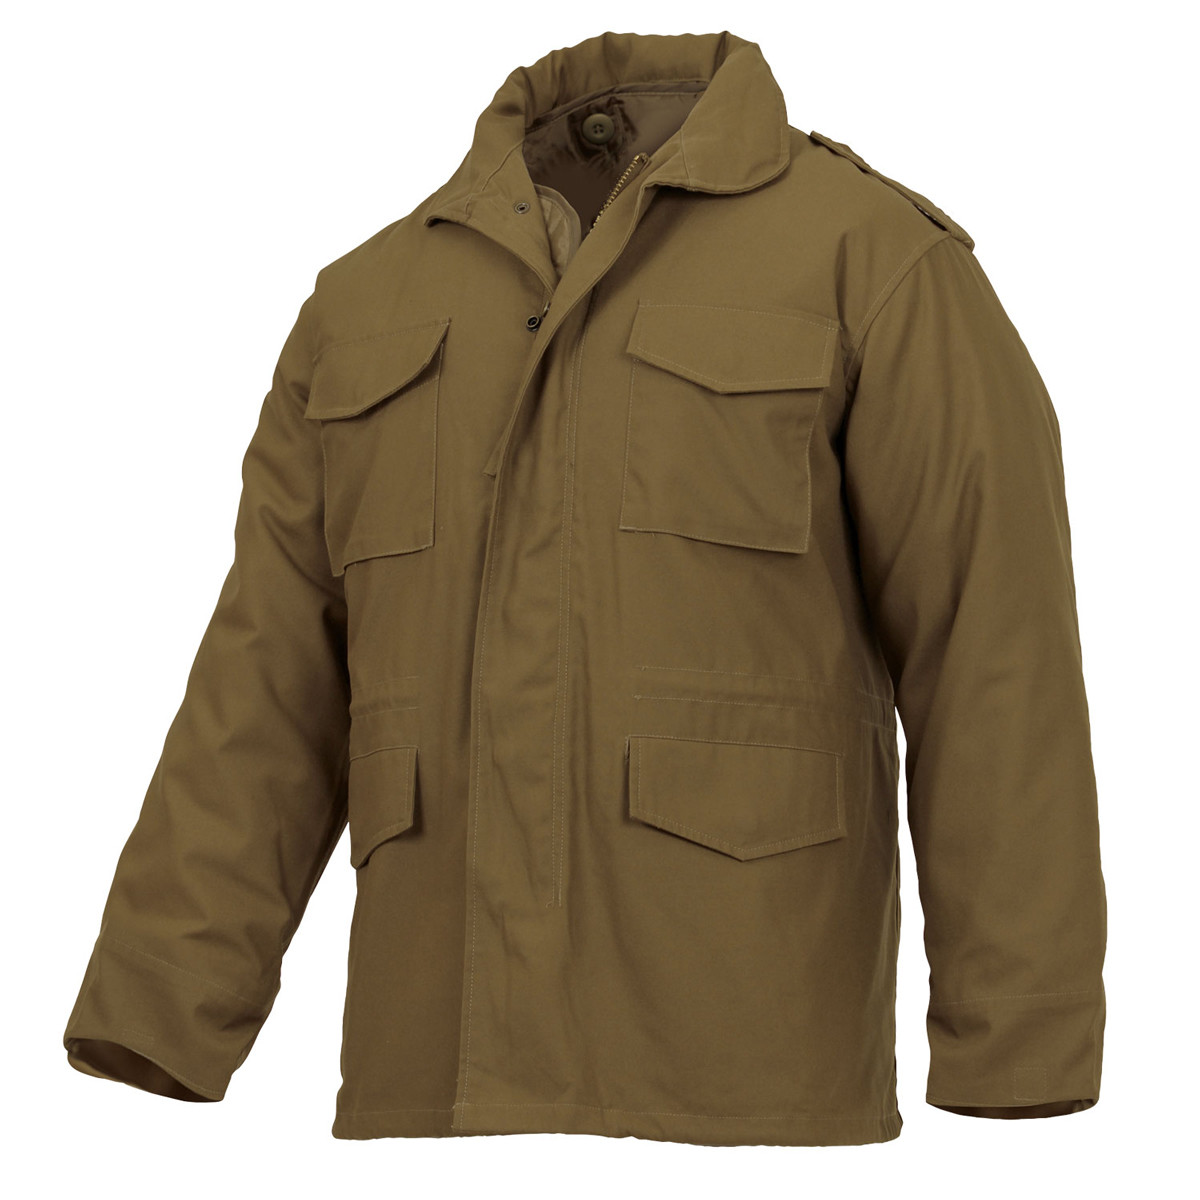 8346985558e2c Shop Coyote Brown M 65 Field Jackets - Fatigues Army Navy Gear